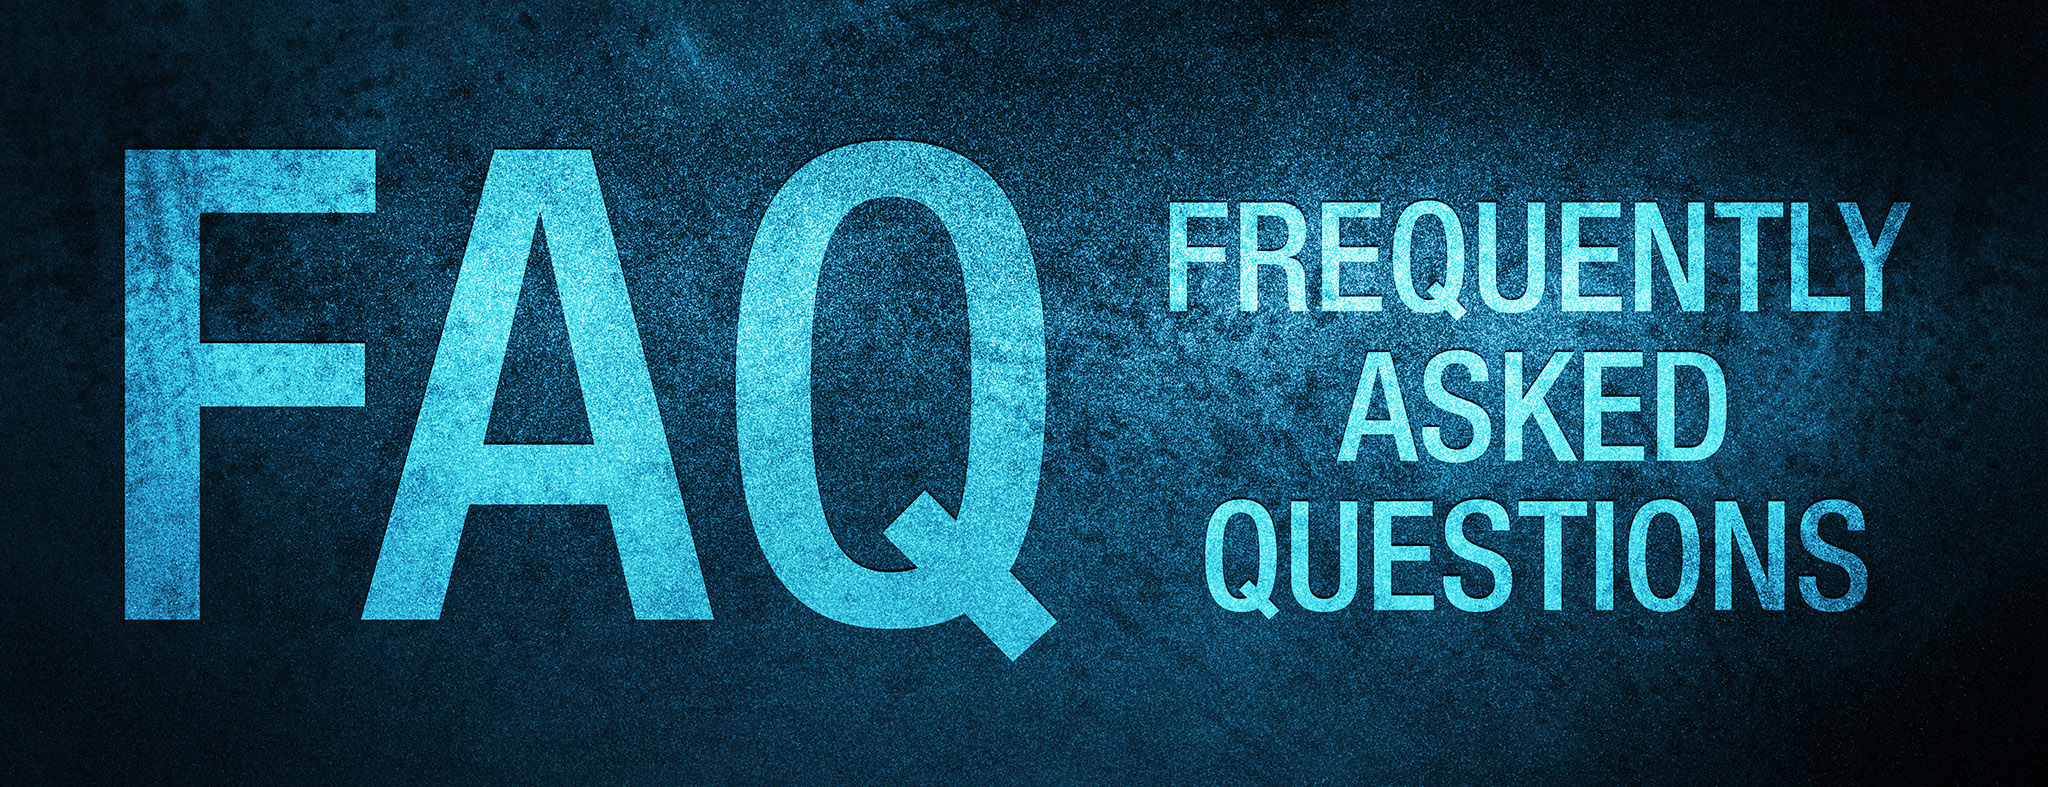 FAQ frequently asked questions isolated on special blue banner background